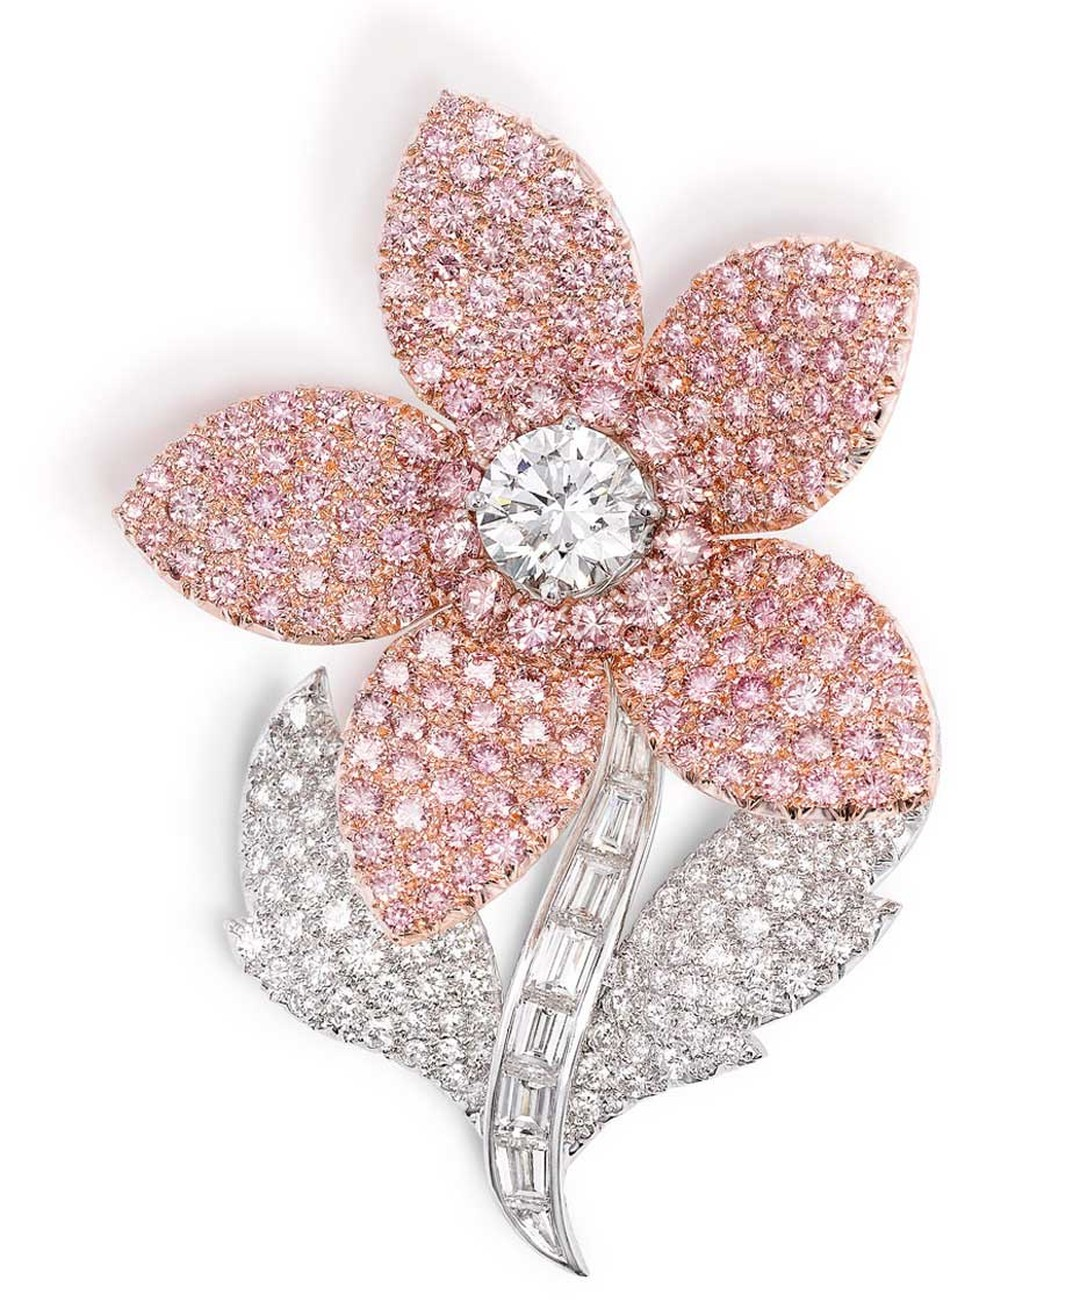 Graff pink and white diamond flower brooch featuring 177 pink diamonds totalling 9.64ct. The brooch formed part of the Argyle Pink Diamonds company's exhibition of pink diamonds in London in 2012.